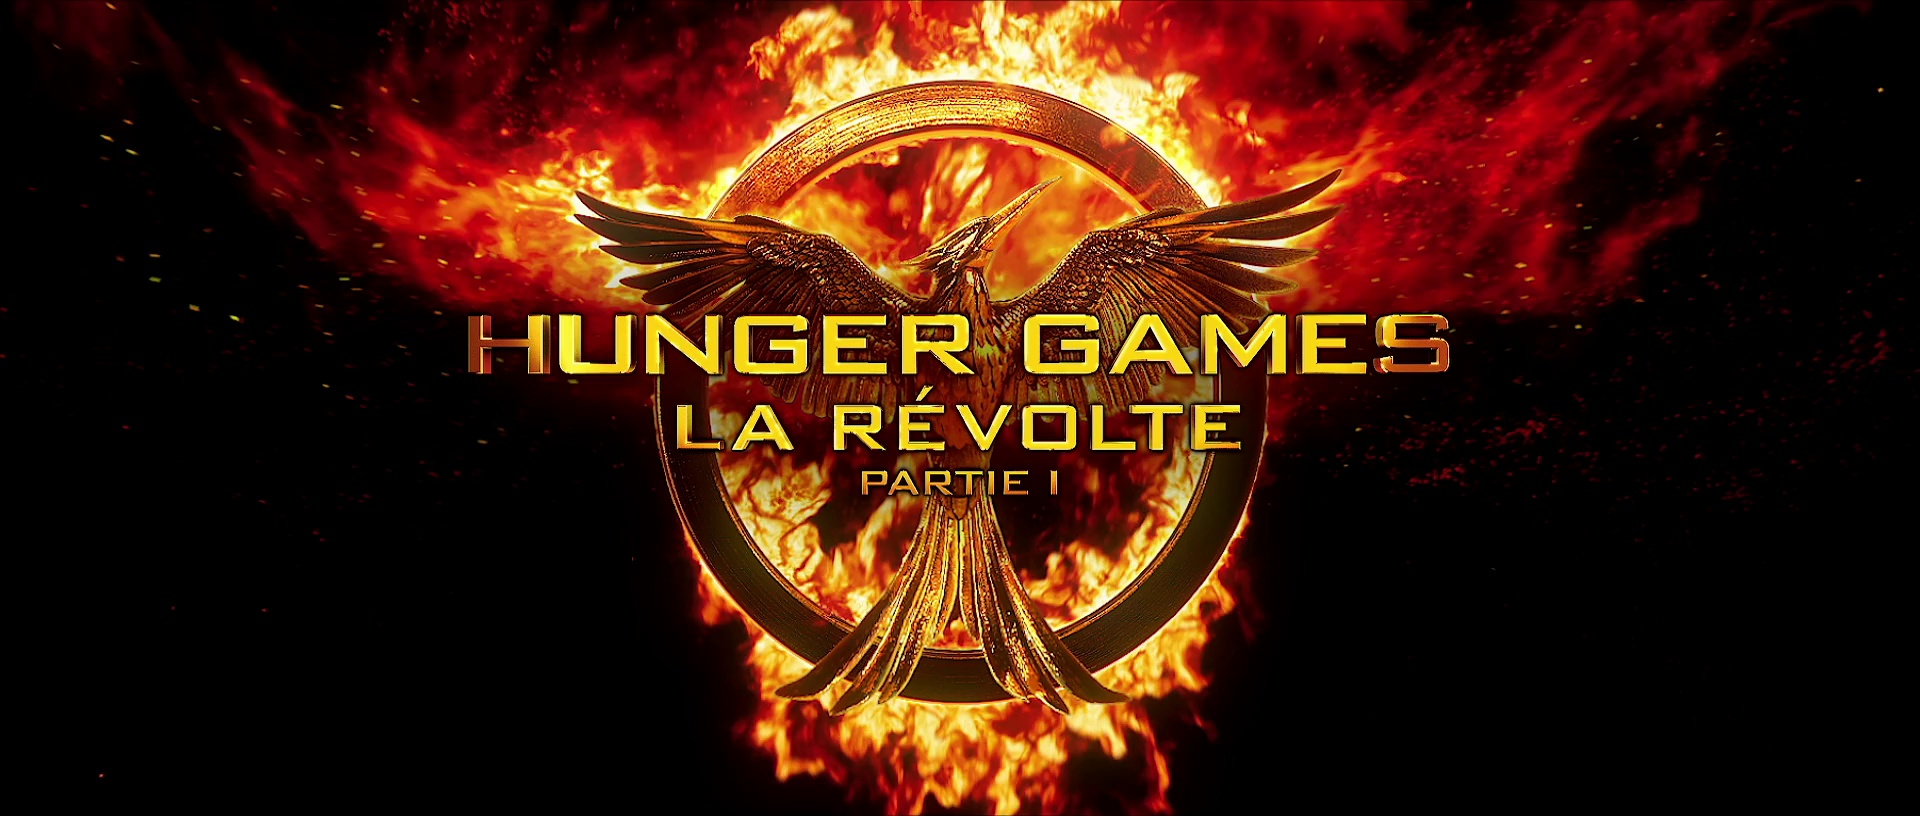 hunger_games_3_revolte